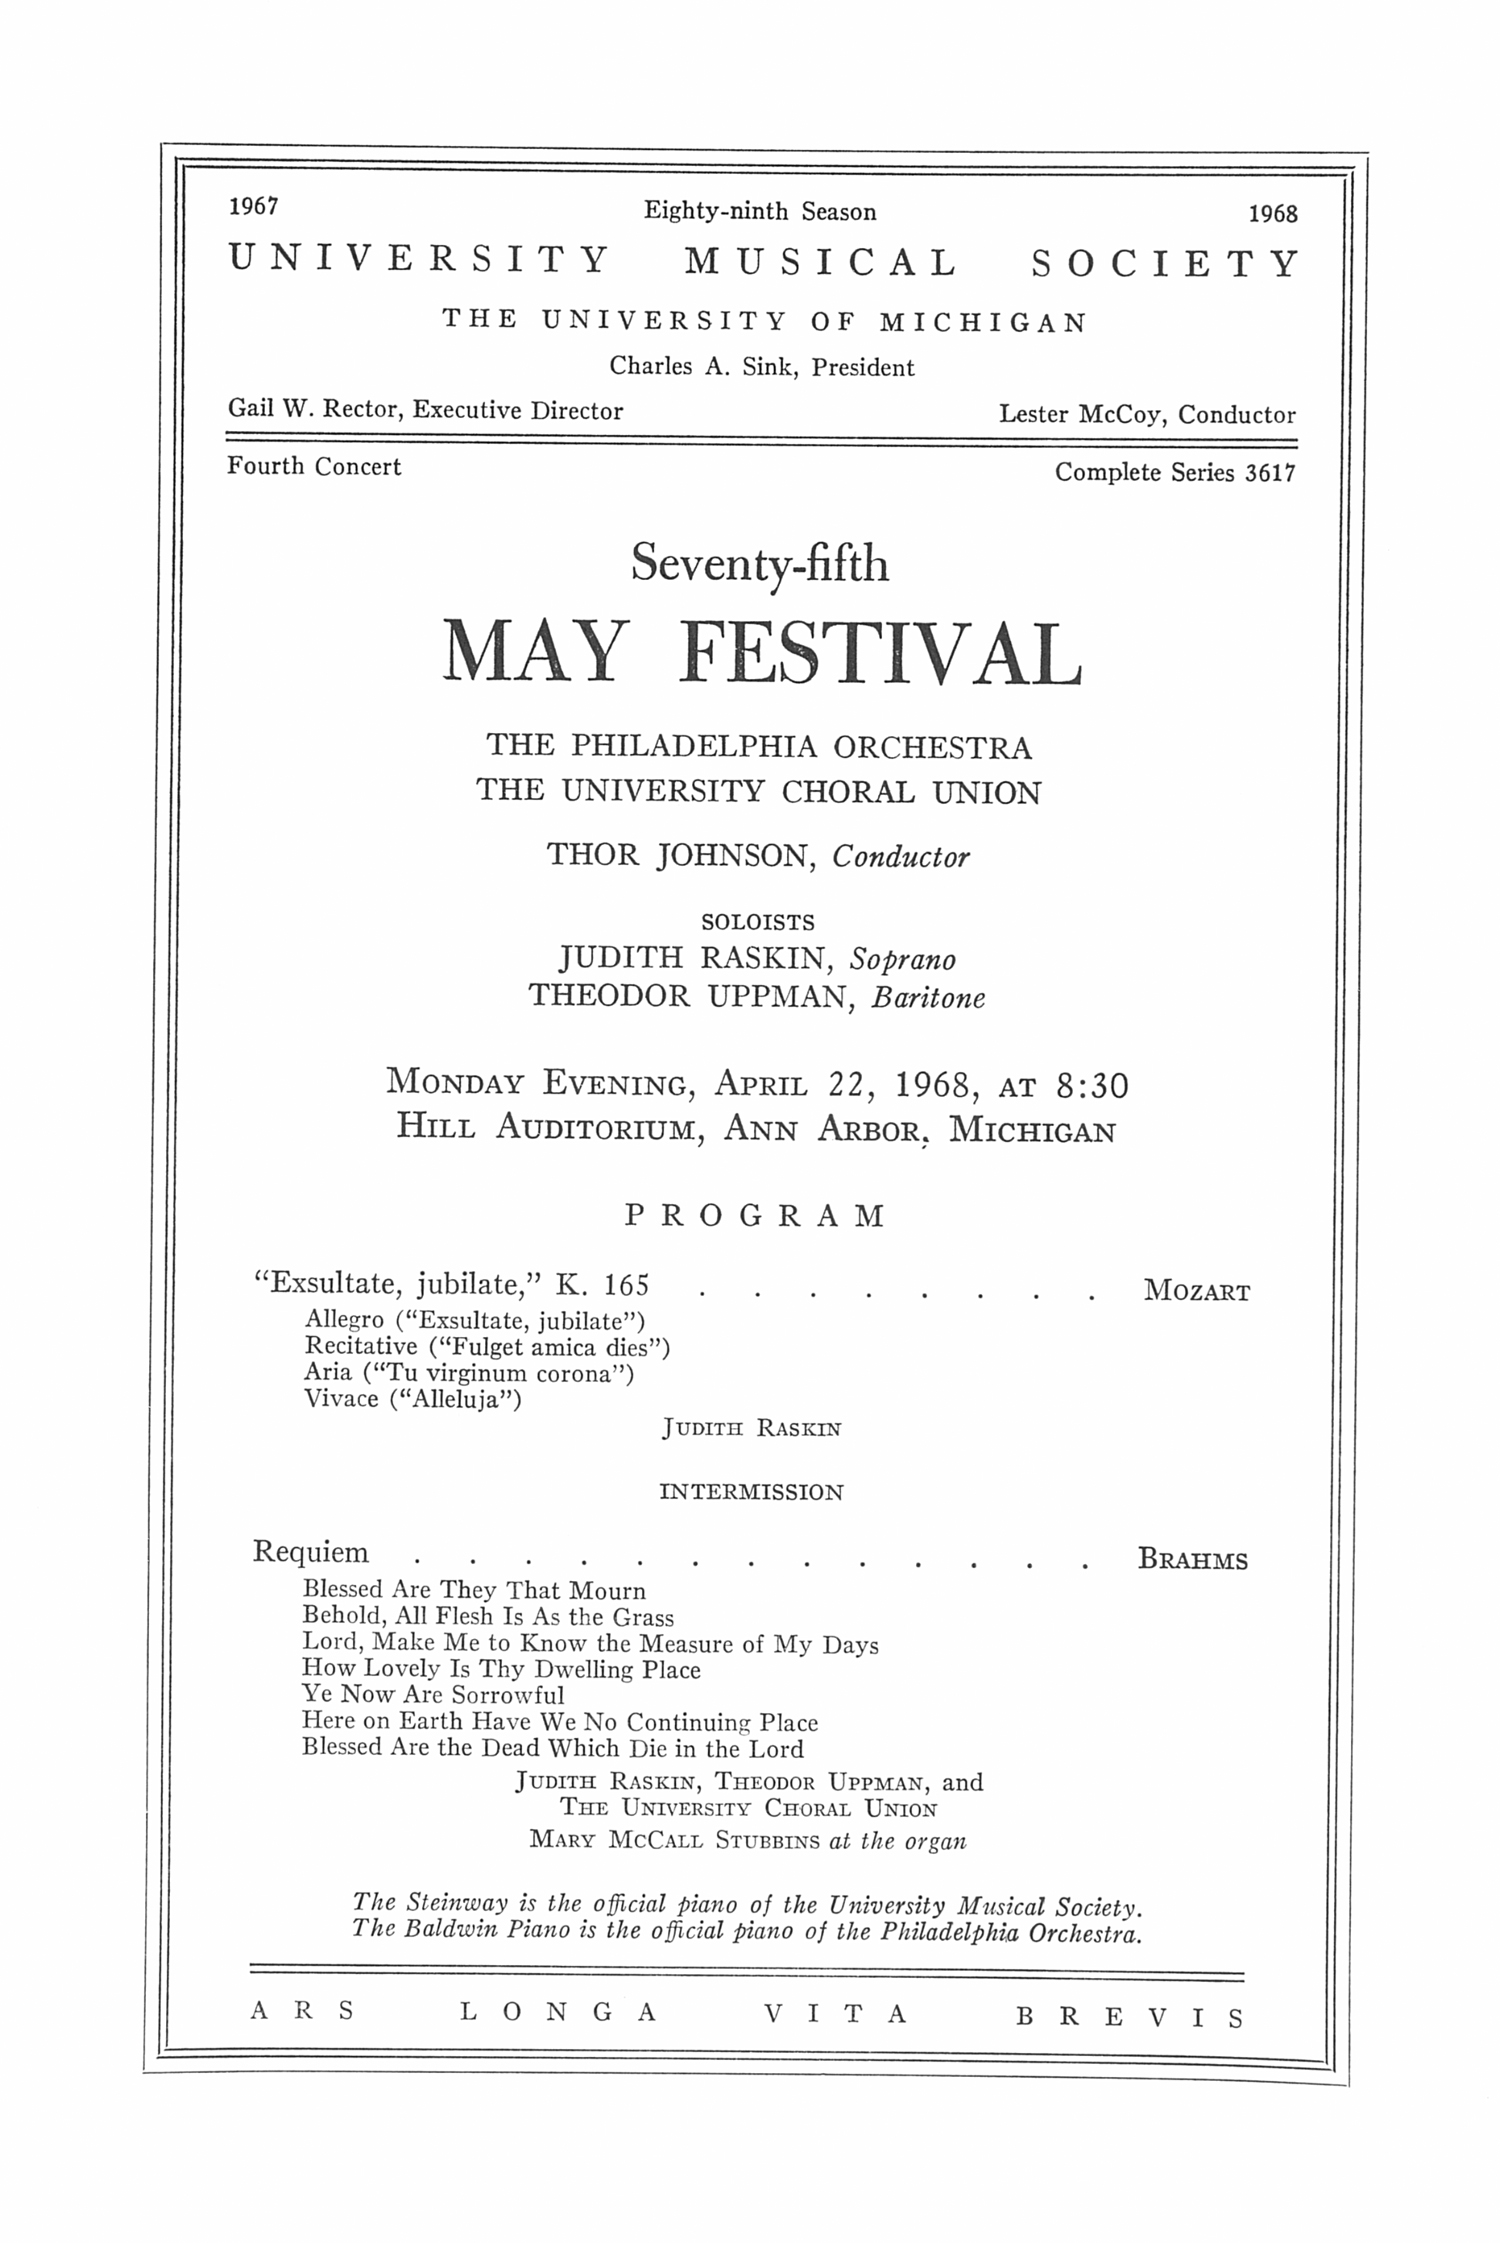 UMS Concert Program, April 22, 1968: Seventy-fifth May Festival -- The Philadelphia Orchestra image